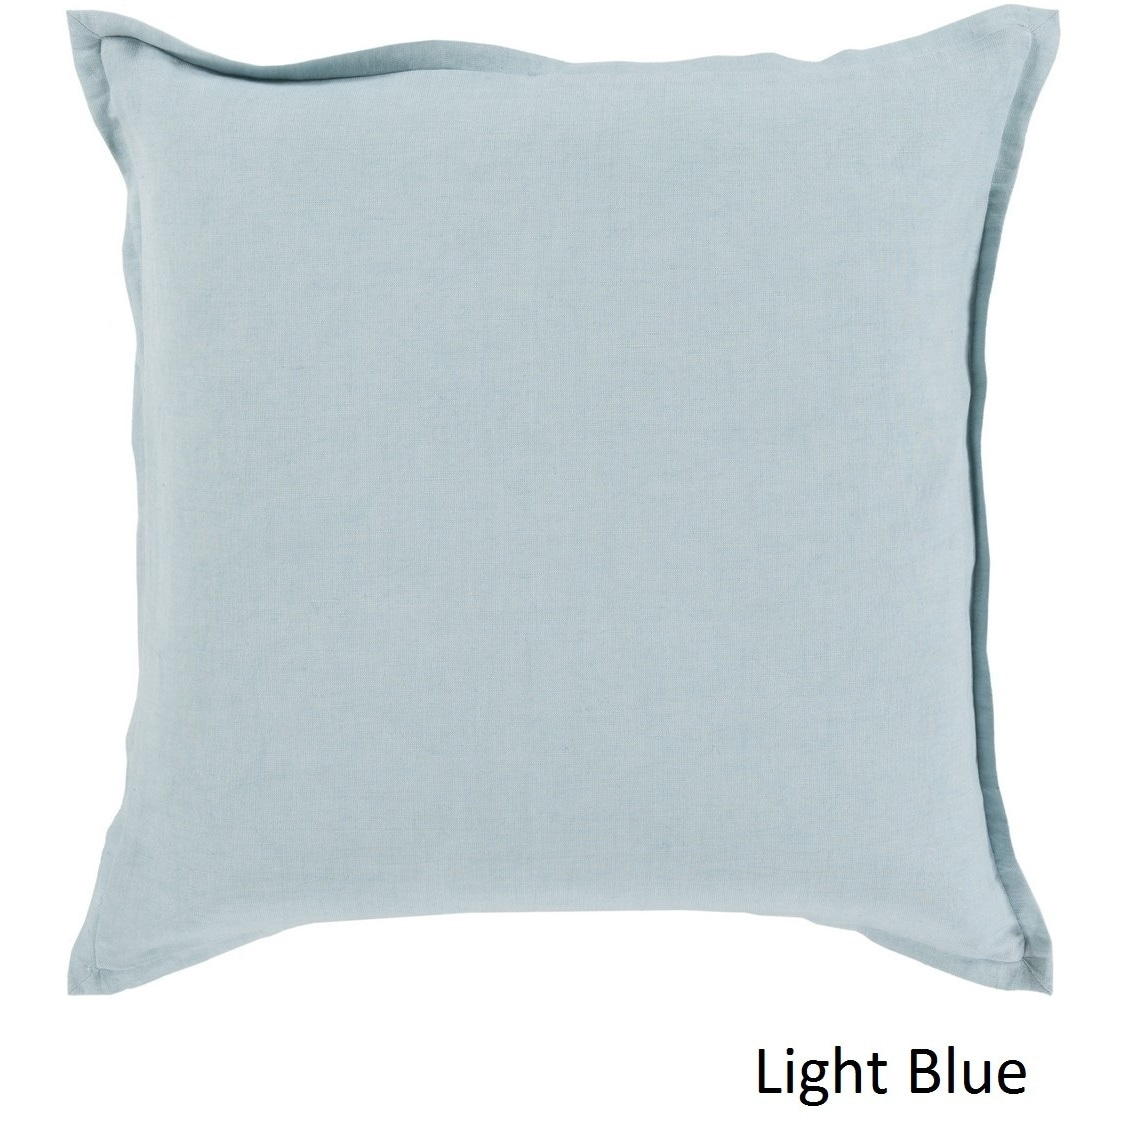 Decorative 20inch poly or feather down filled pillow